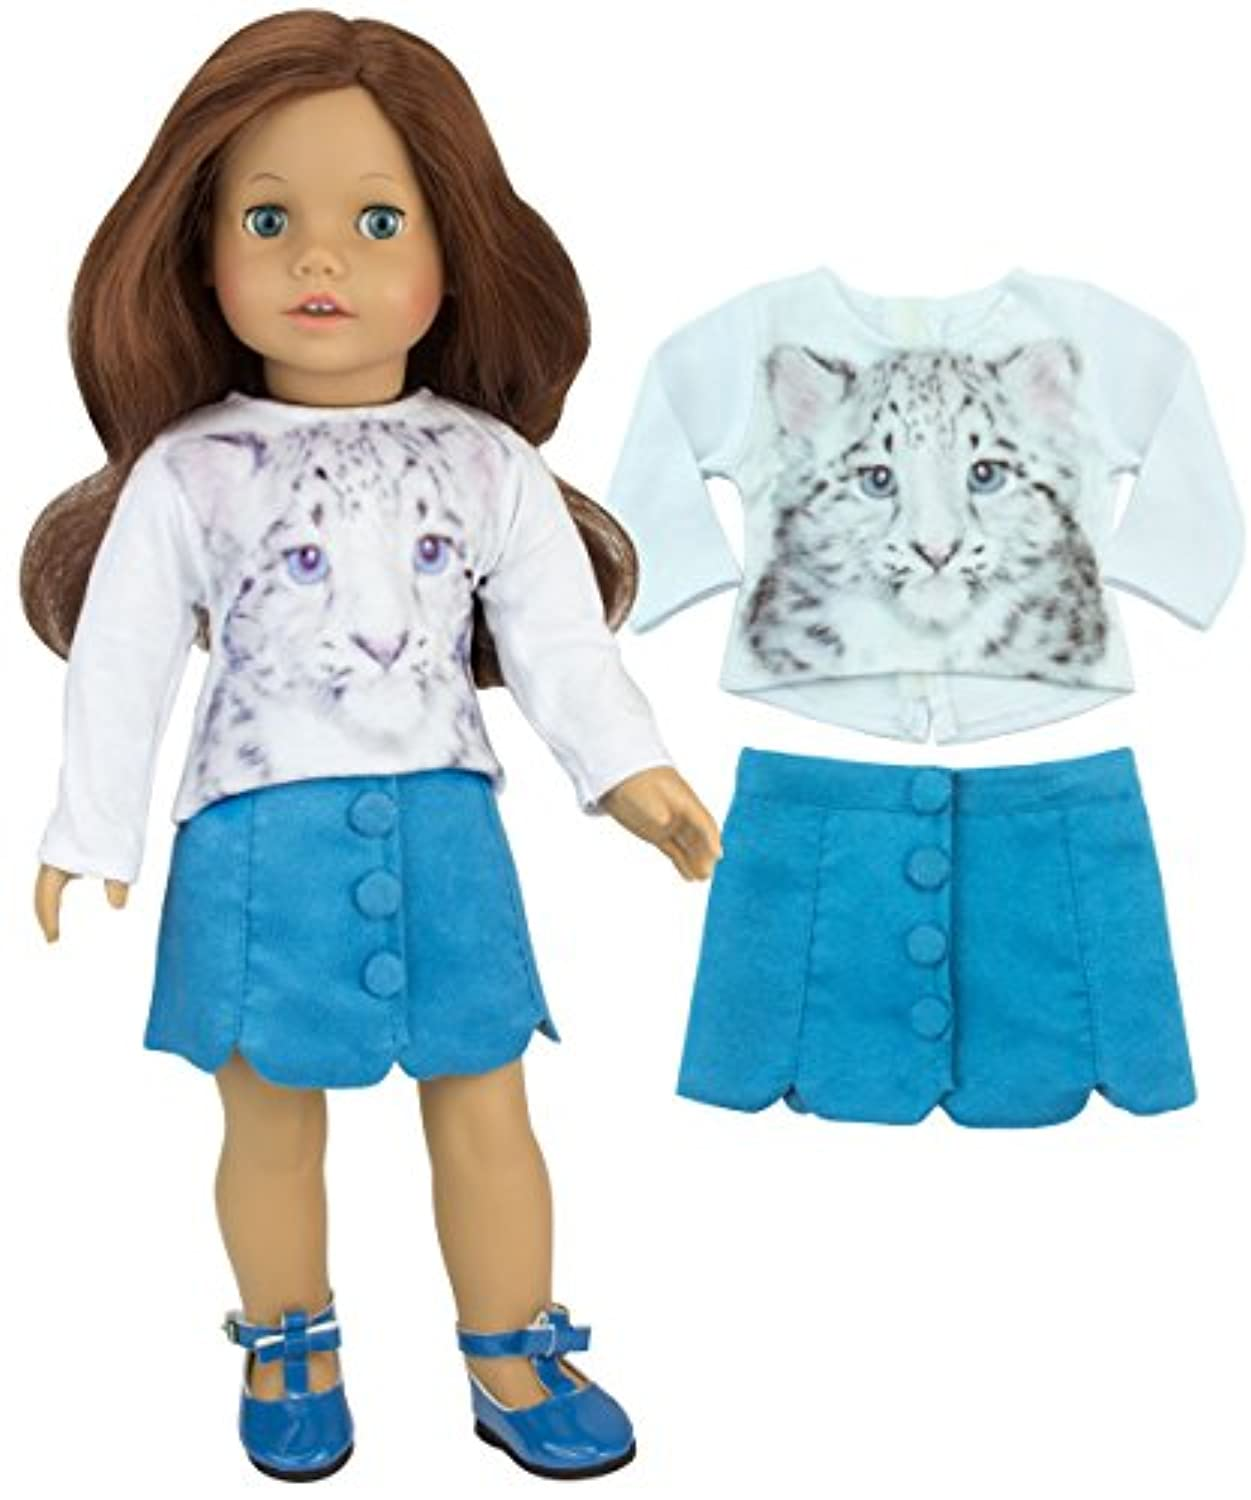 Sophias 46cm Doll Stylish 2 Pc. Outfit of White Snow Leopard Tee & Teal Suede Skirt with Buttons.Doll Cat Shirt and Doll Skirt Set for American Girl Dolls and More